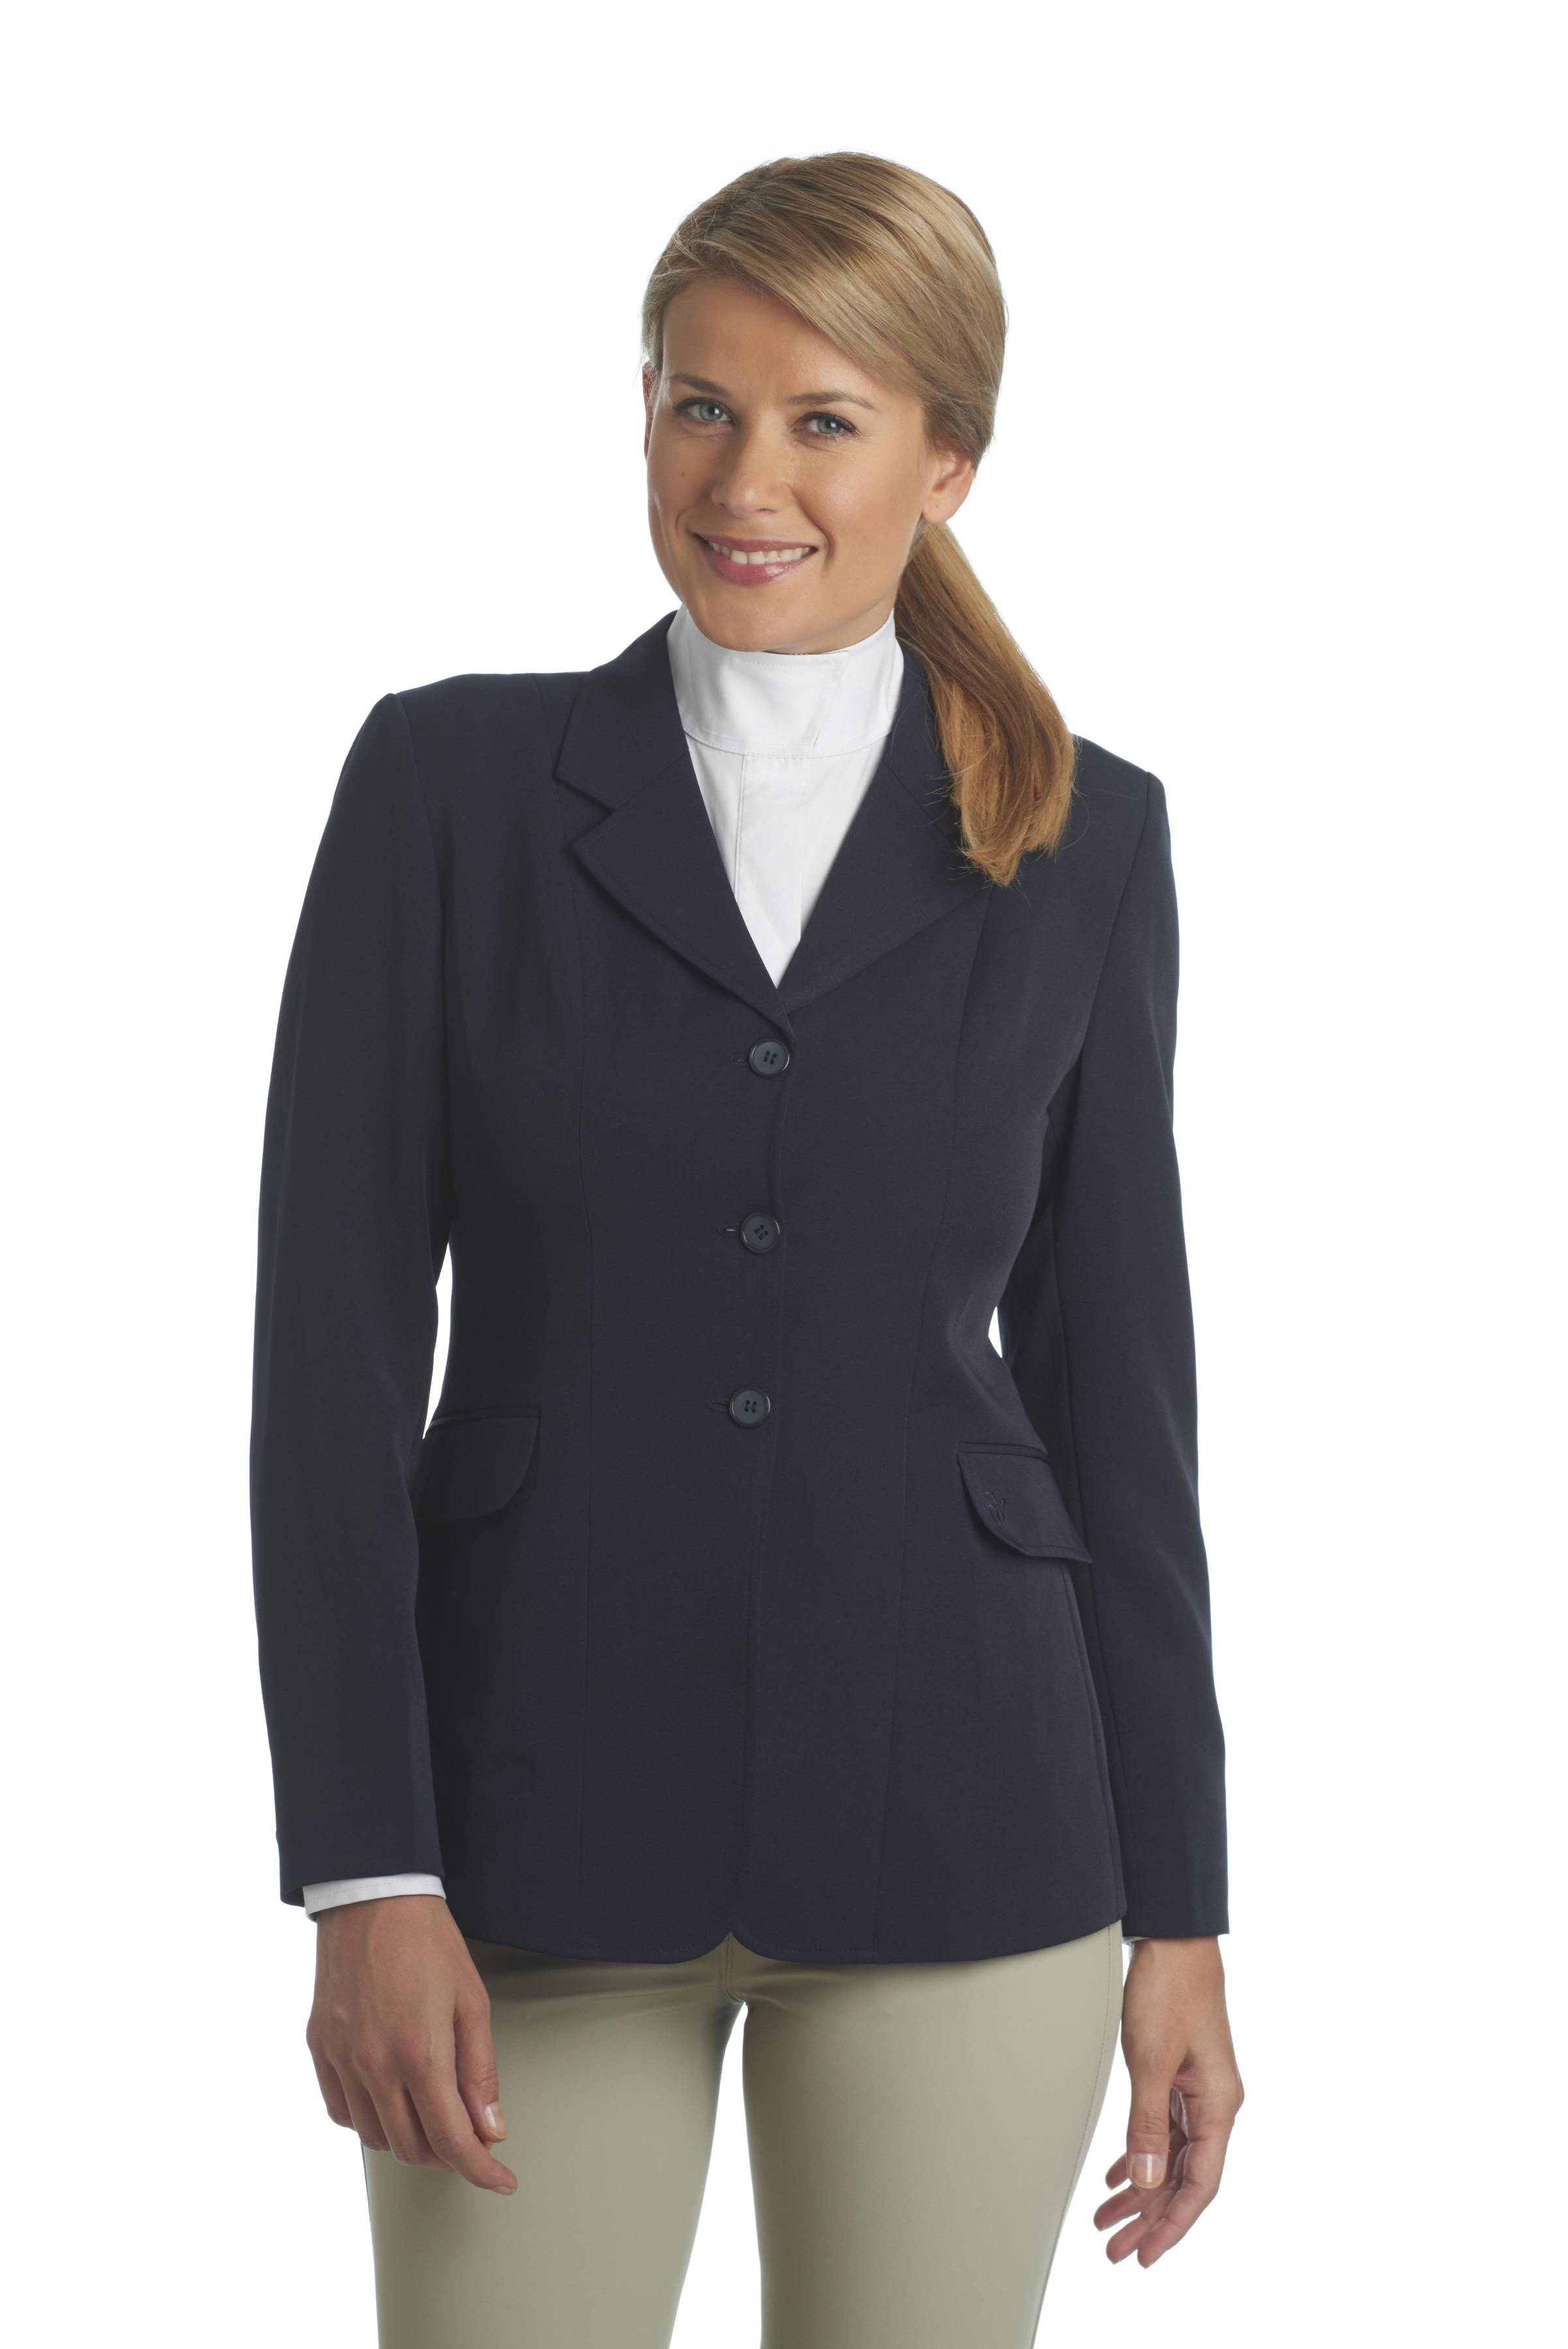 Ovation Classic Performance Coat-Ladies, Navy